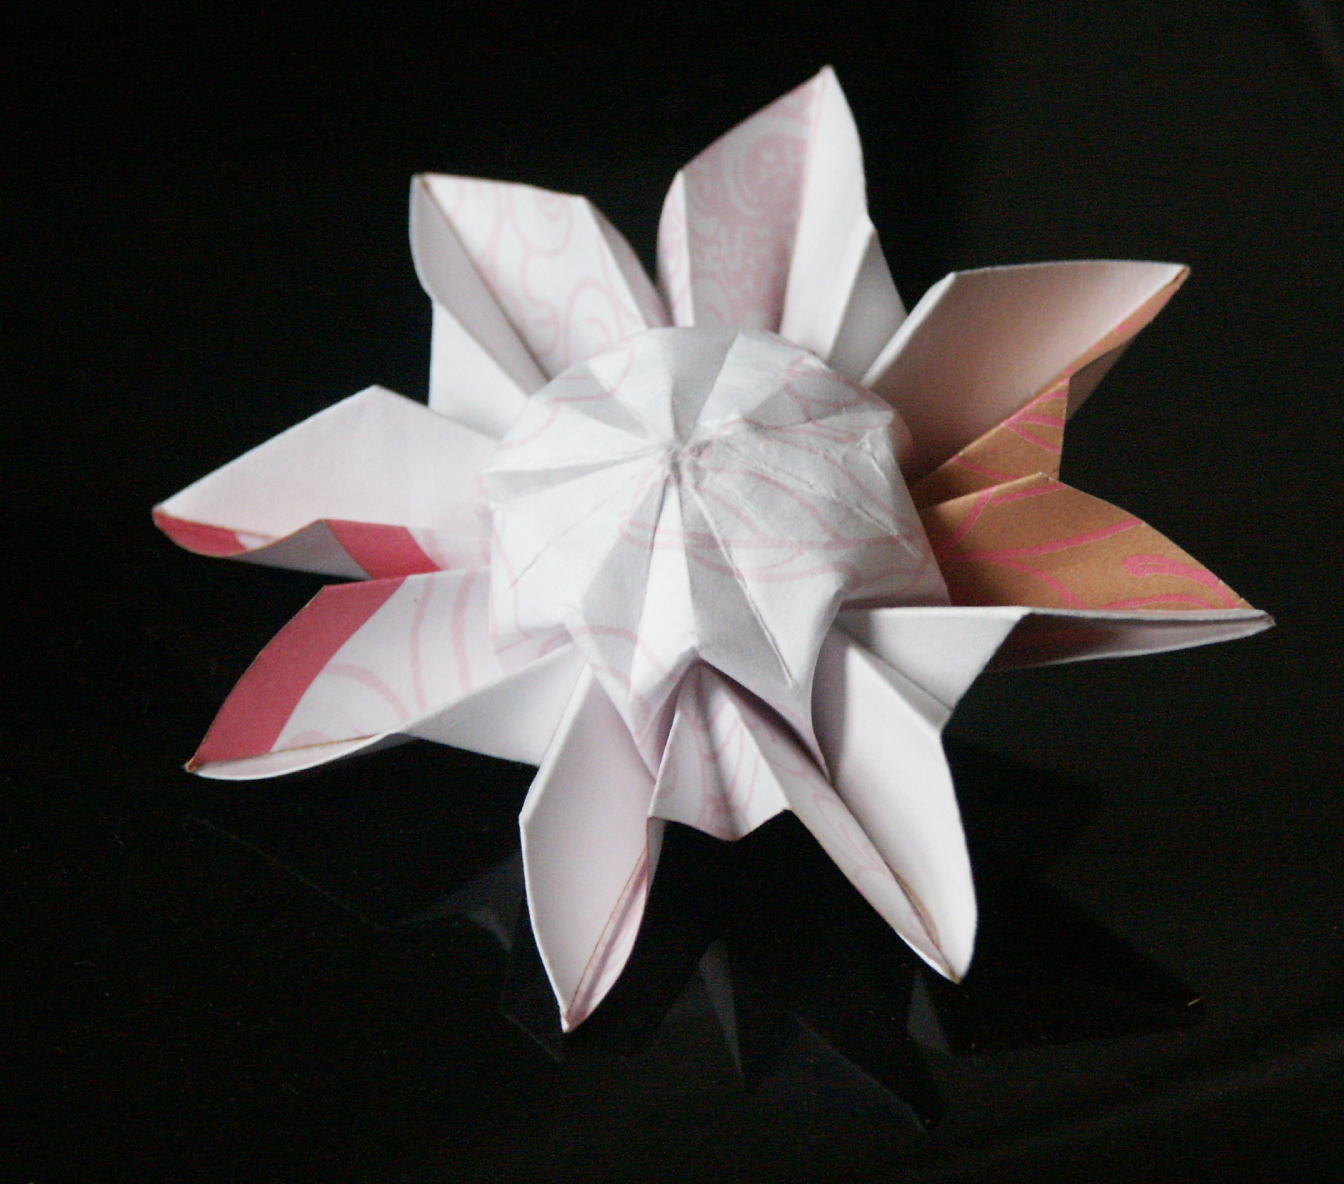 LEARN TO MAKE ORIGAMI FLOWERS EMBROIDERY & ORIGAMI